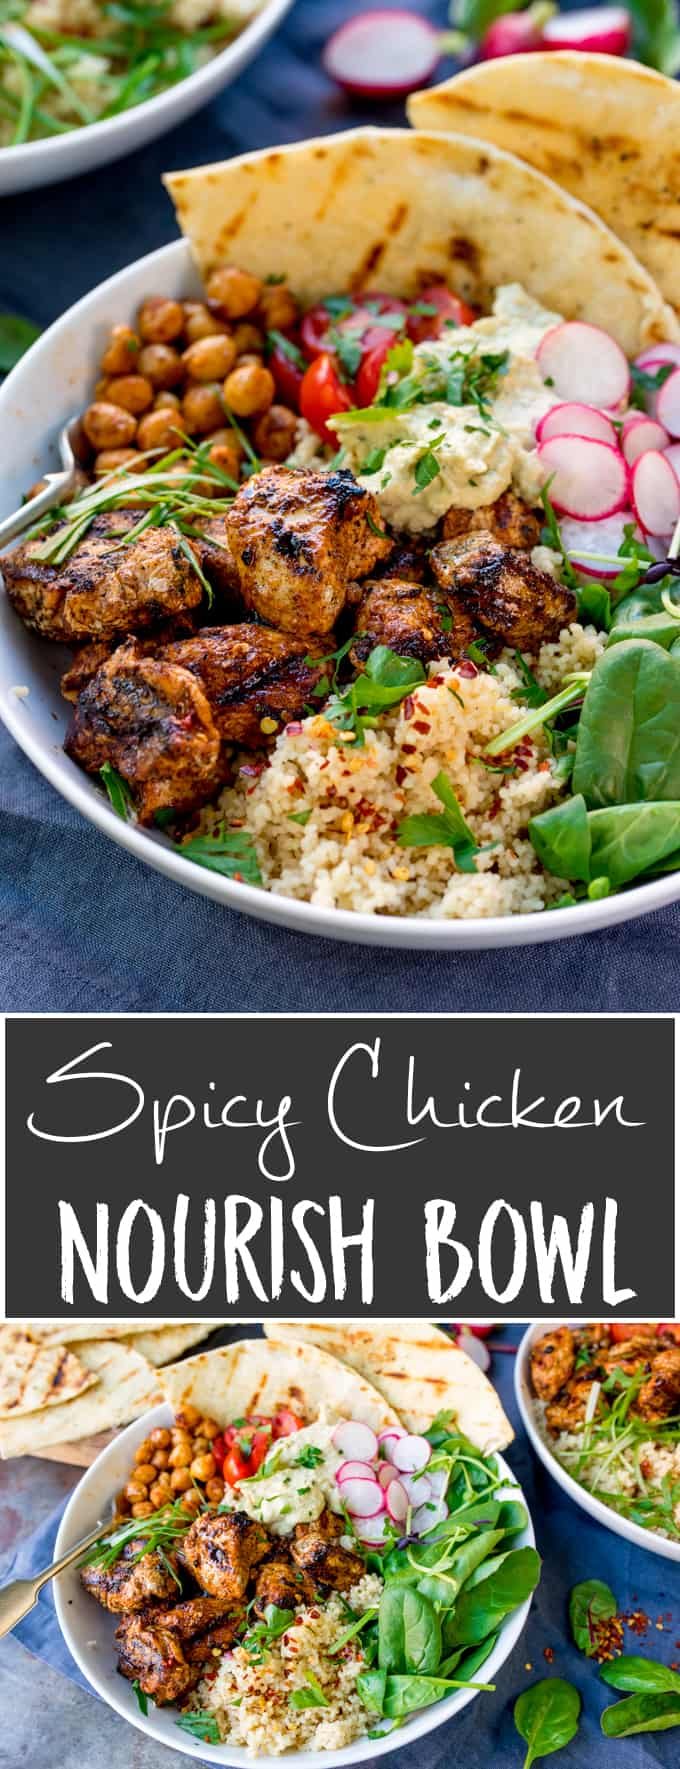 Spicy Chicken Nourish Bowl - A filling and nutritious warm salad, with middle eastern flavours -perfect for Fall. A healthier Autumn dinner.